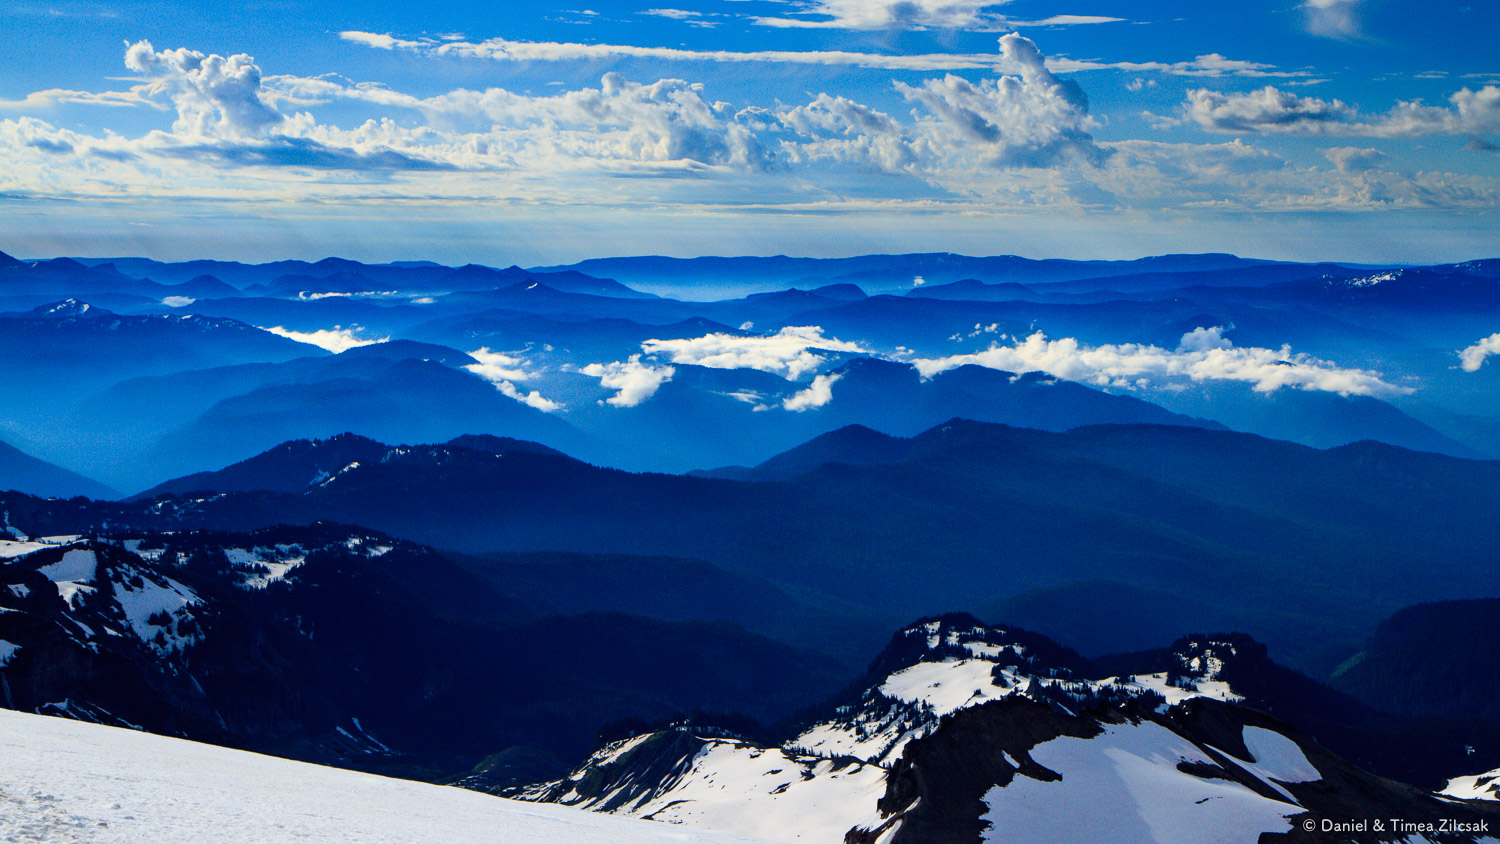 The Cascade Mountains look like hills from 9k on the Muir snowfield near Moon Rocks and Camp Muir